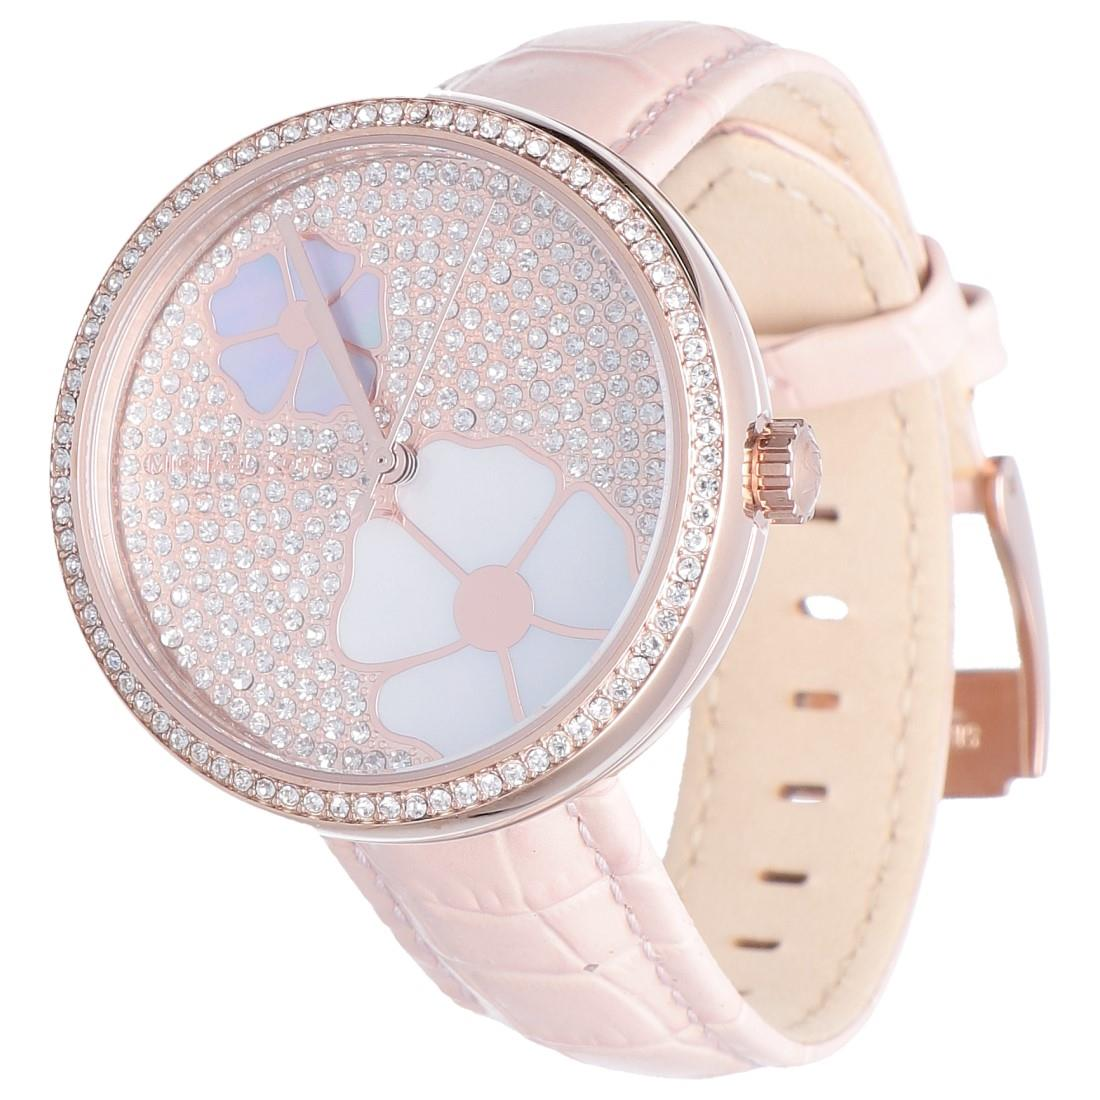 6a777a9aeb97 Watch 36 mm case in rose gold steel - MICHAEL KORS - LuxuryZone